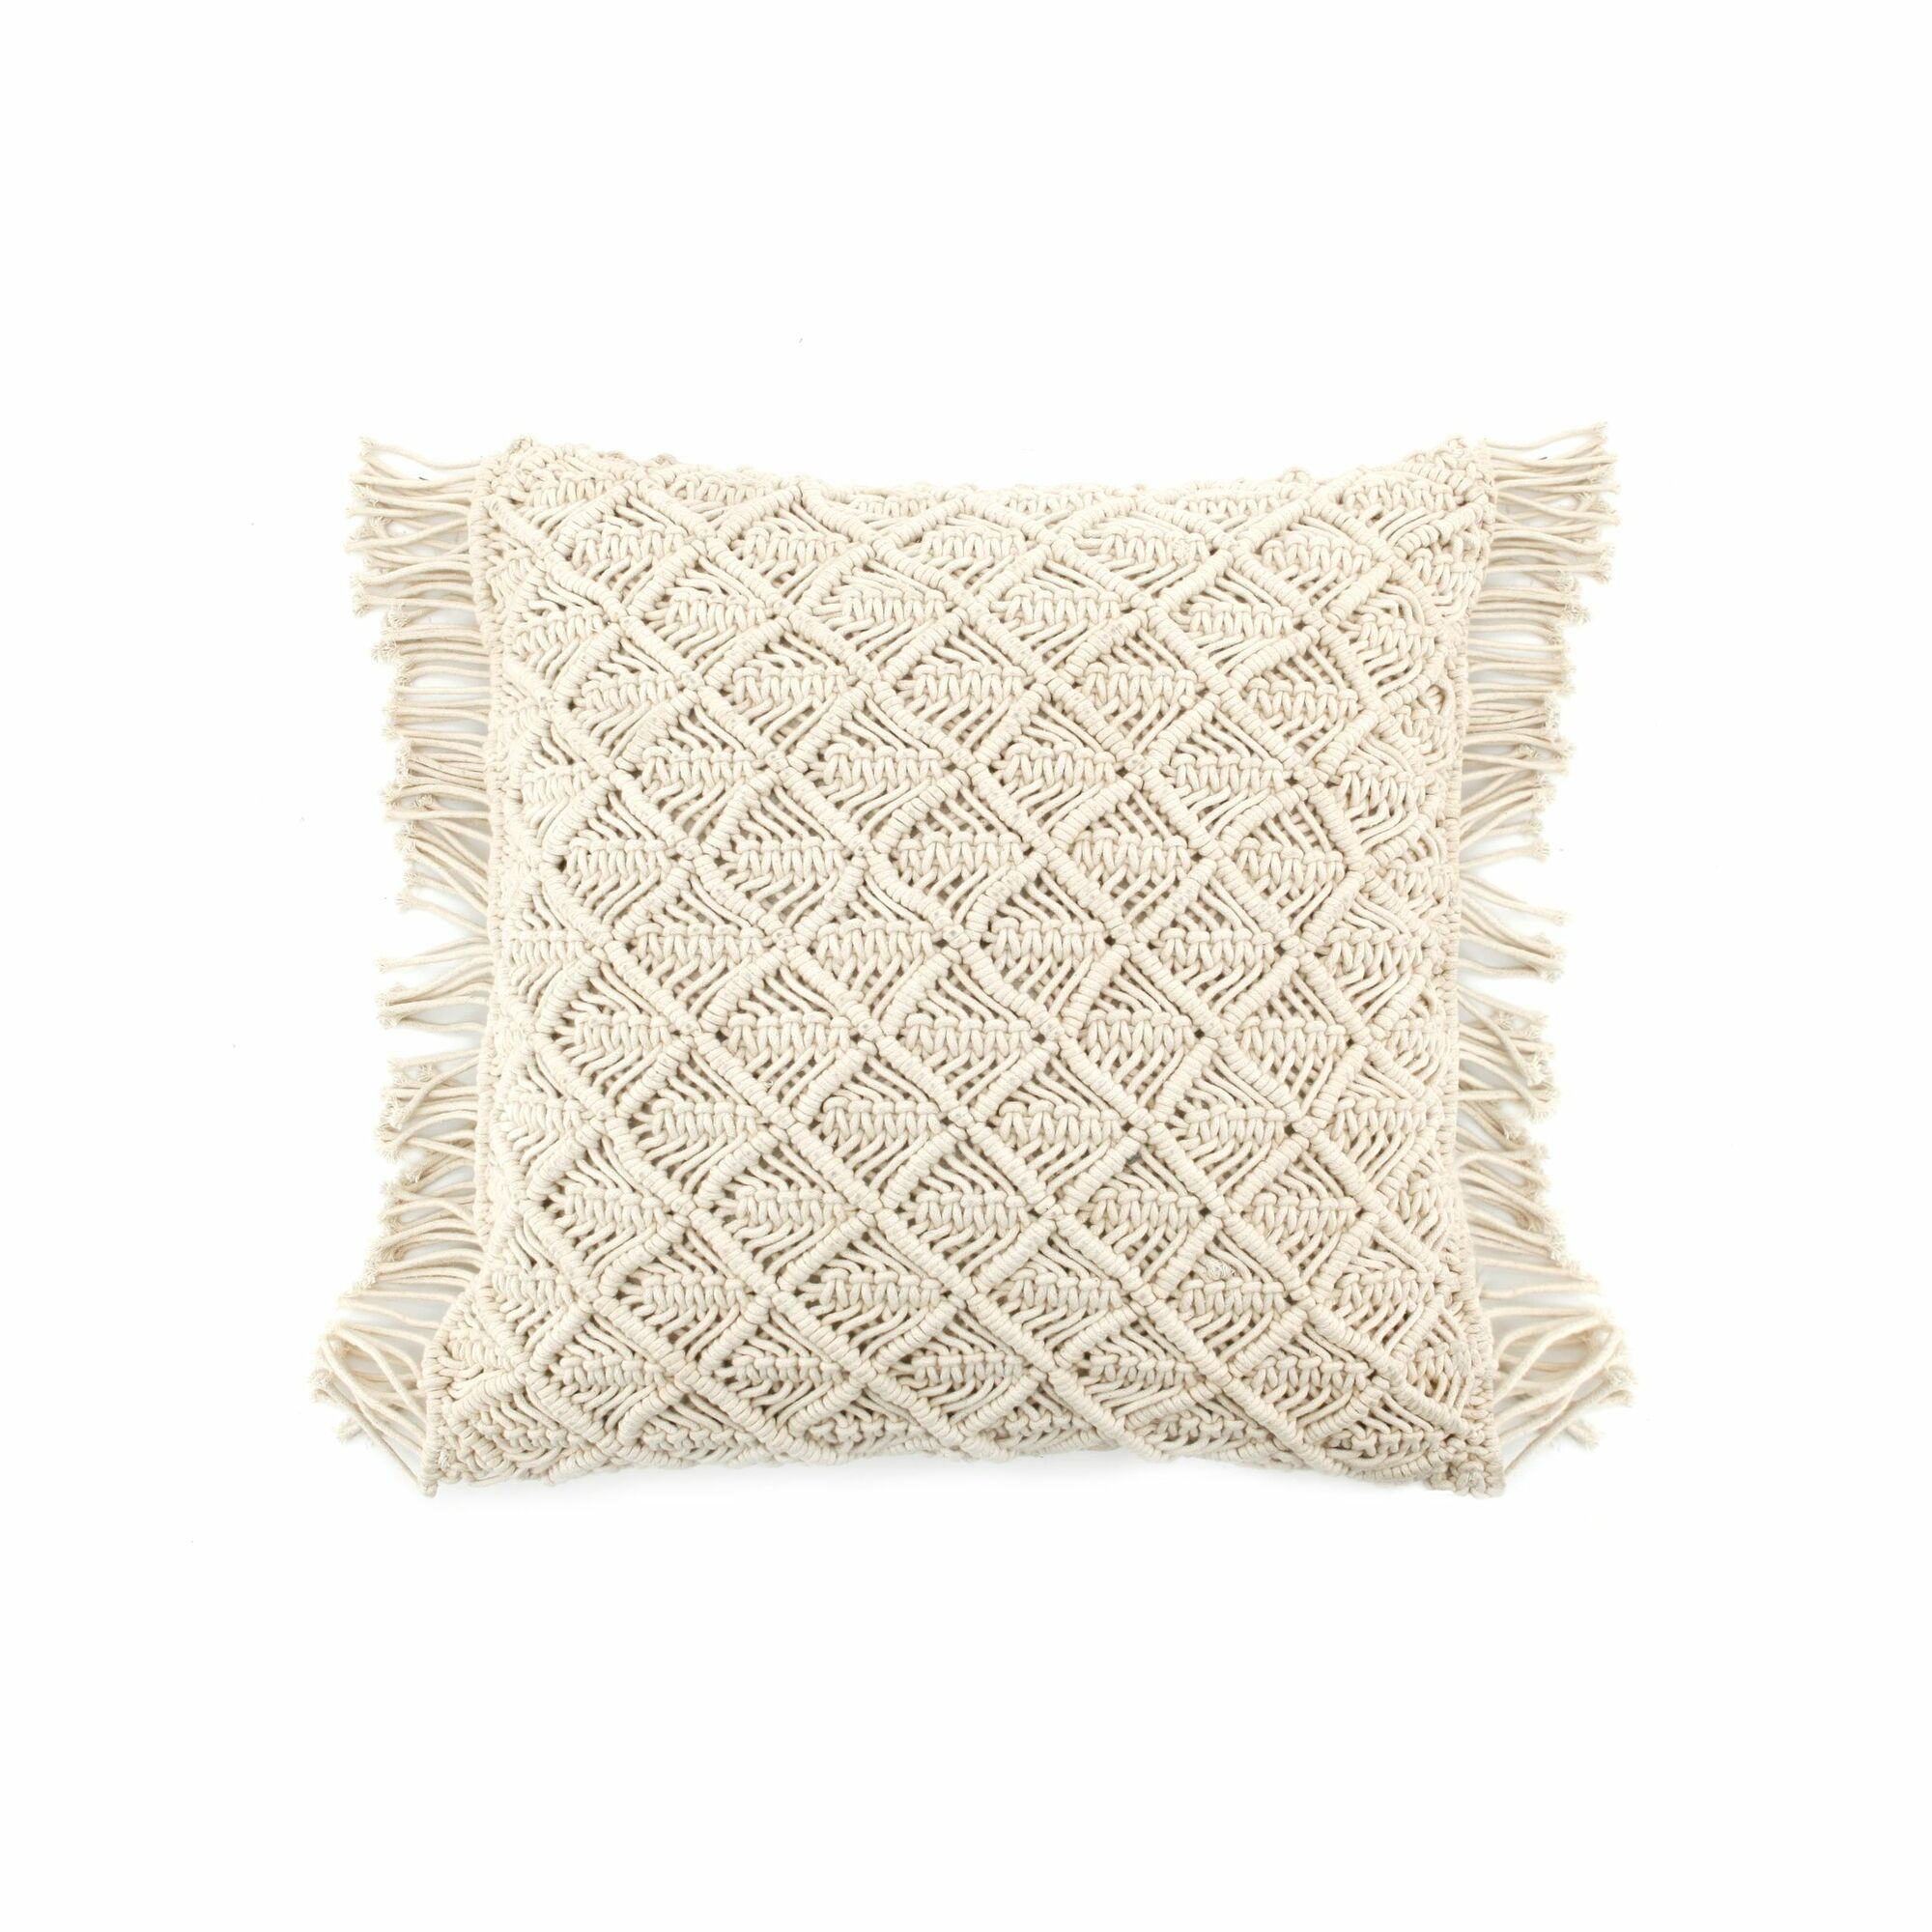 by-boo 3059 pillow chief 50x50 cm - natural